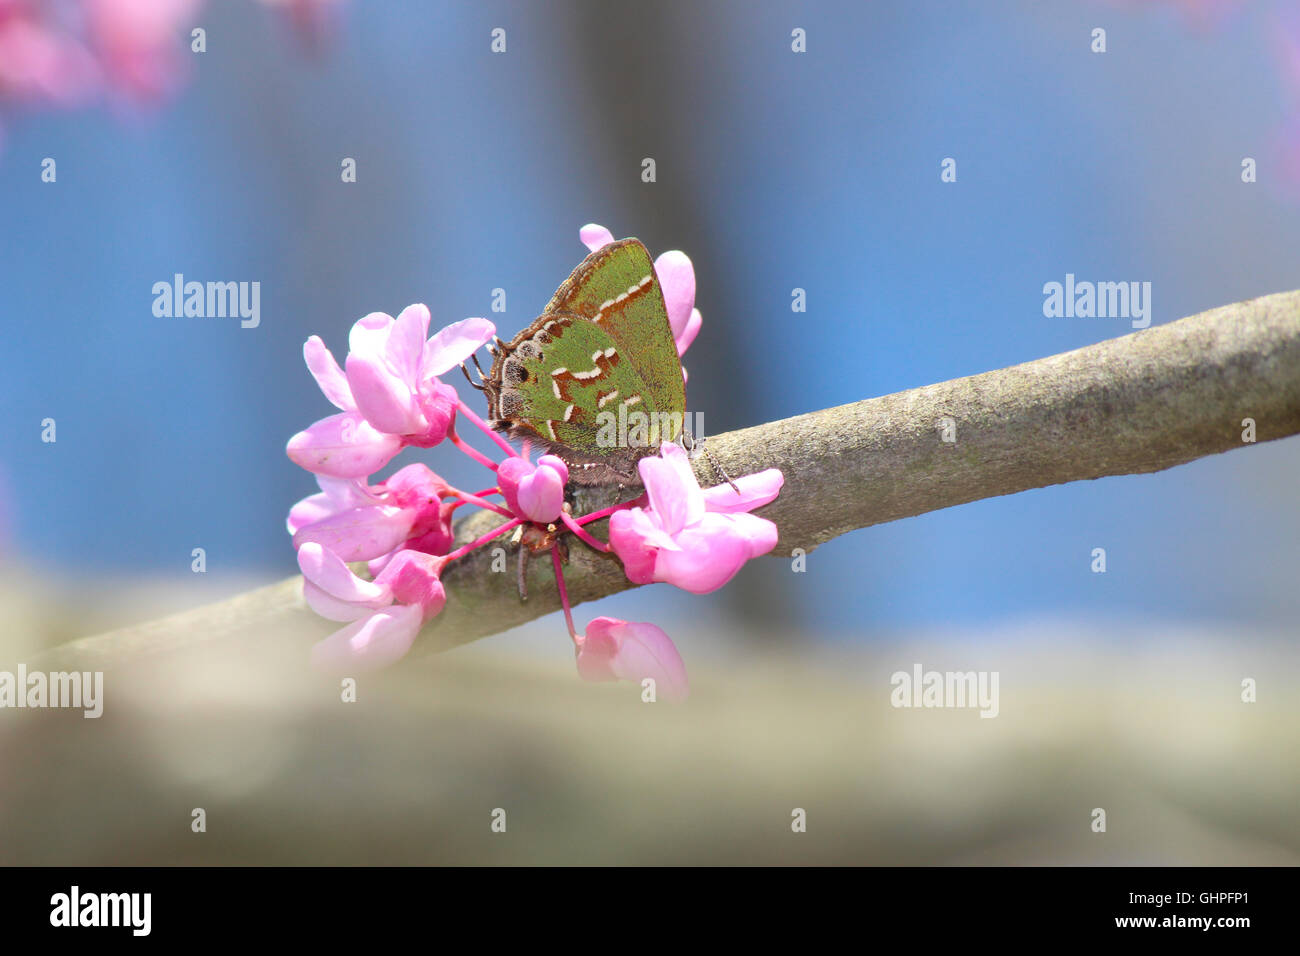 A Juniper Hairstreak butterfly (Callophrys gryneus) nectaring on eastern redbud (Cercis canadensis), Indiana, United States Stock Photo